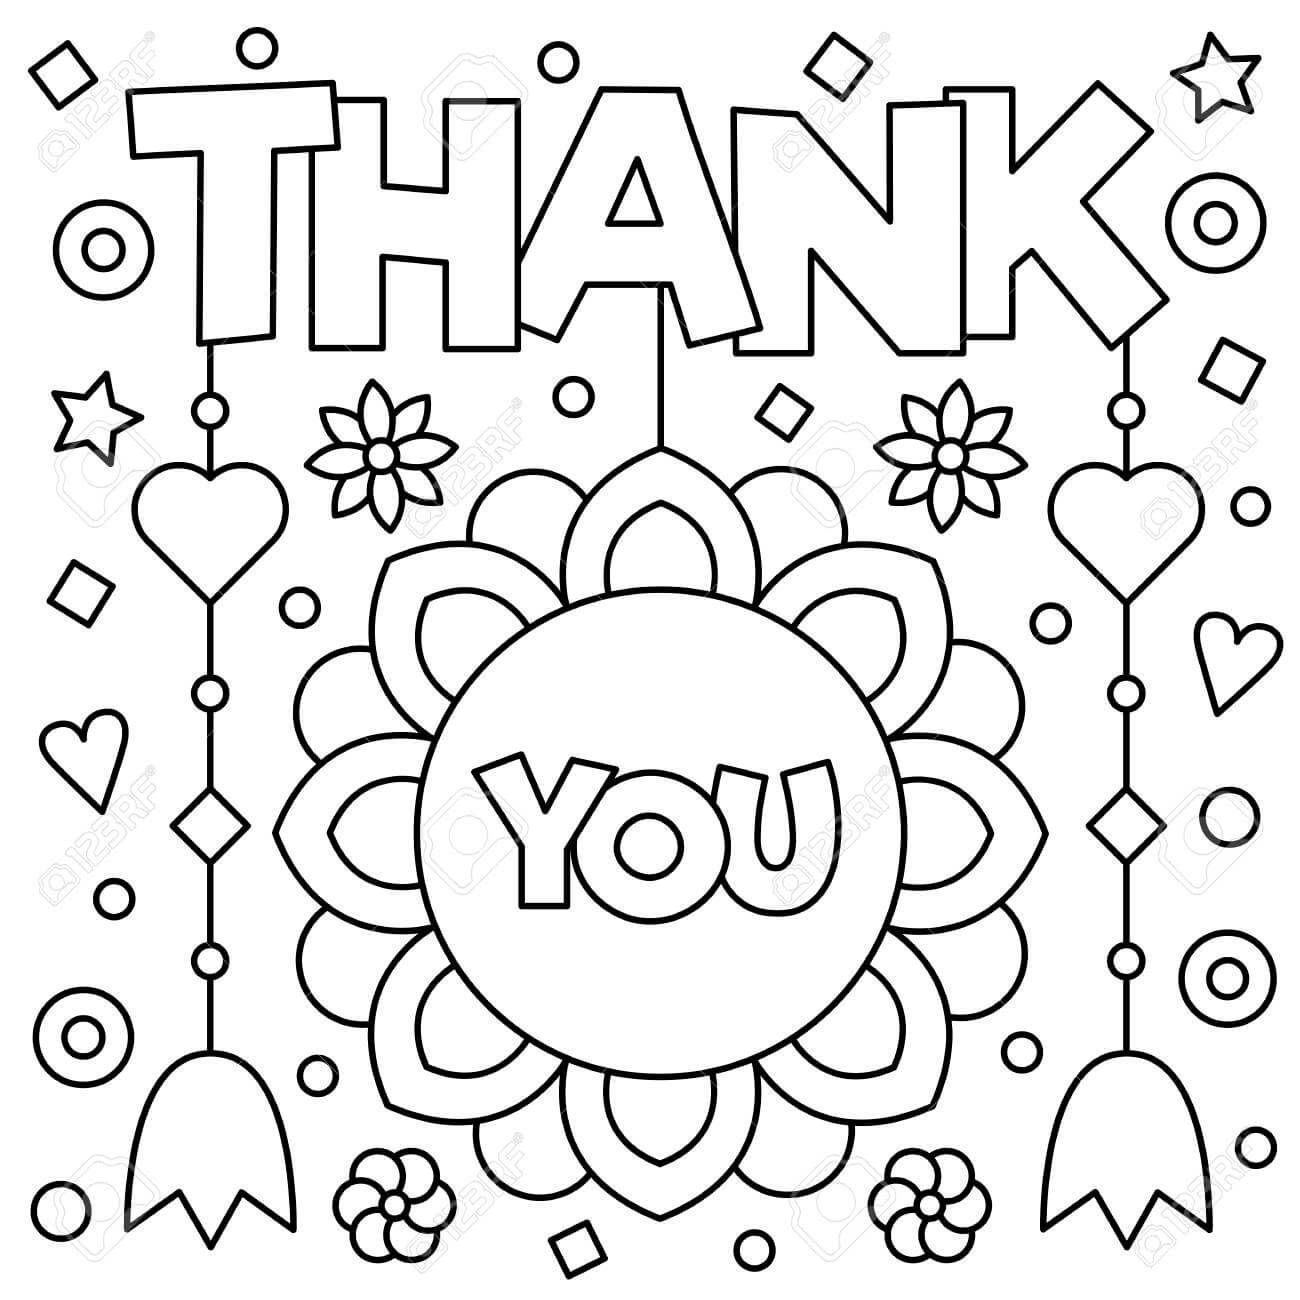 Coloring Pages For Kids Free Printable Printable Thank You Coloring Pages For Kids Coloringpages Coloring Pages Cute Coloring Pages Coloring Pages For Kids